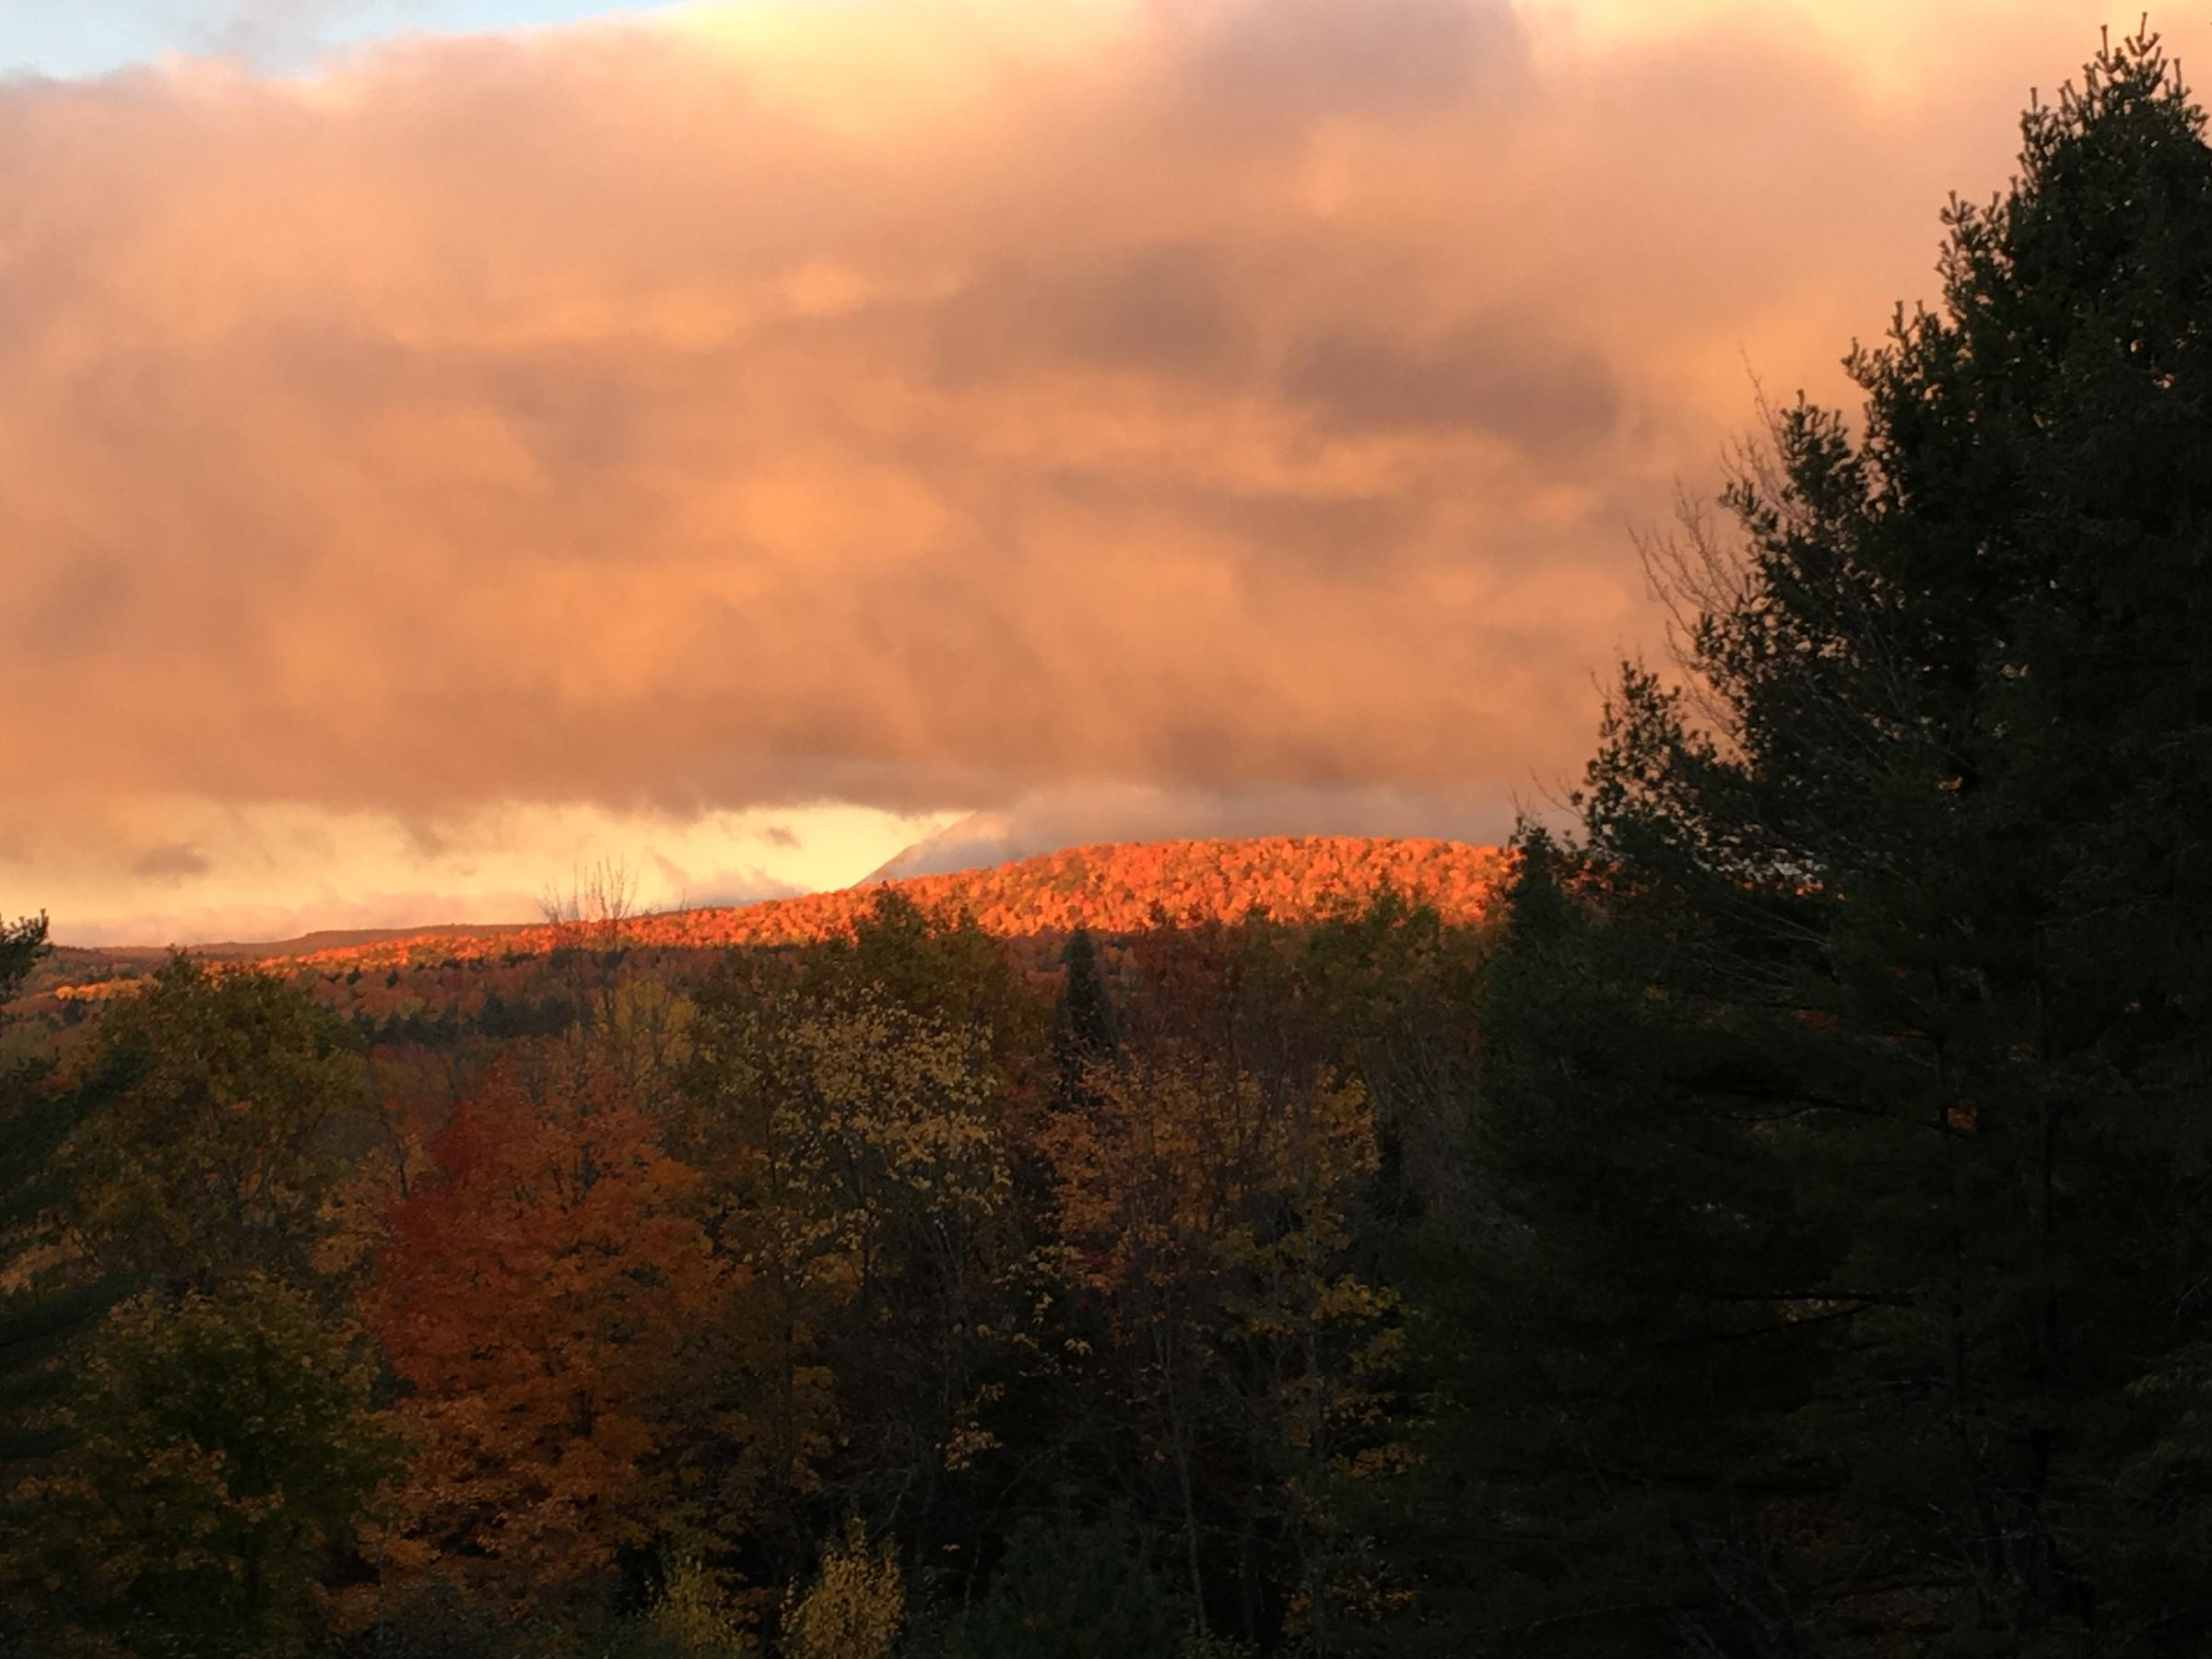 Katahdin Woods & Waters: An Update on the National Monument and Its Impact in the Region